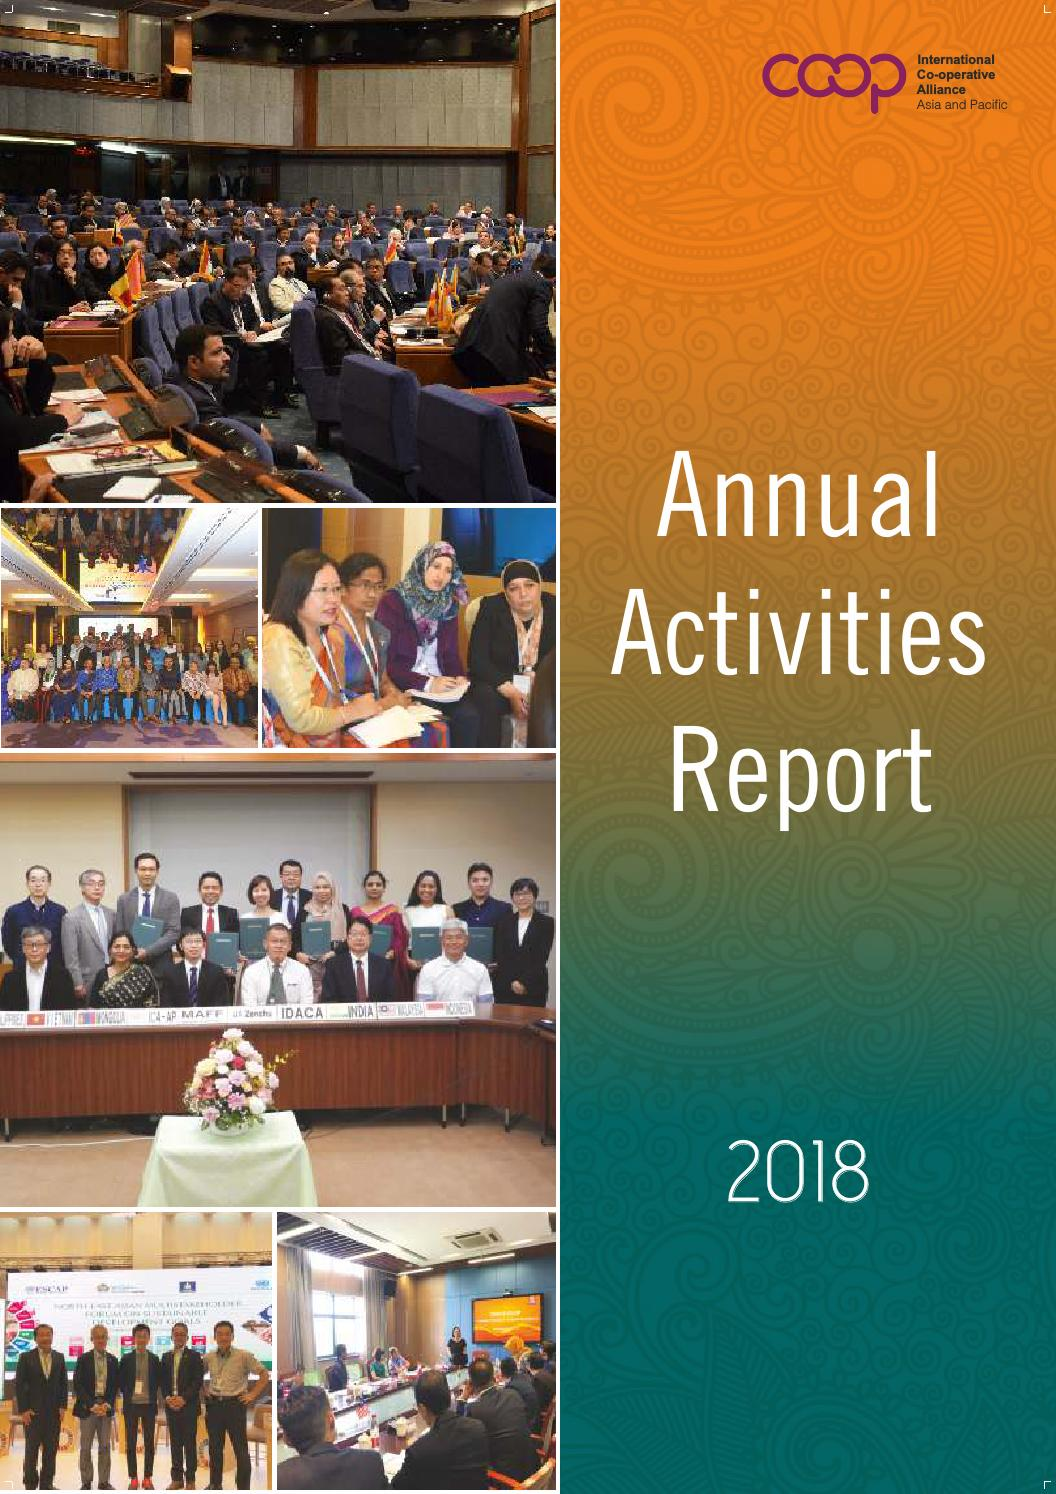 ICA-AP Annual Activities Report 2018 by ICA-Asia and Pacific